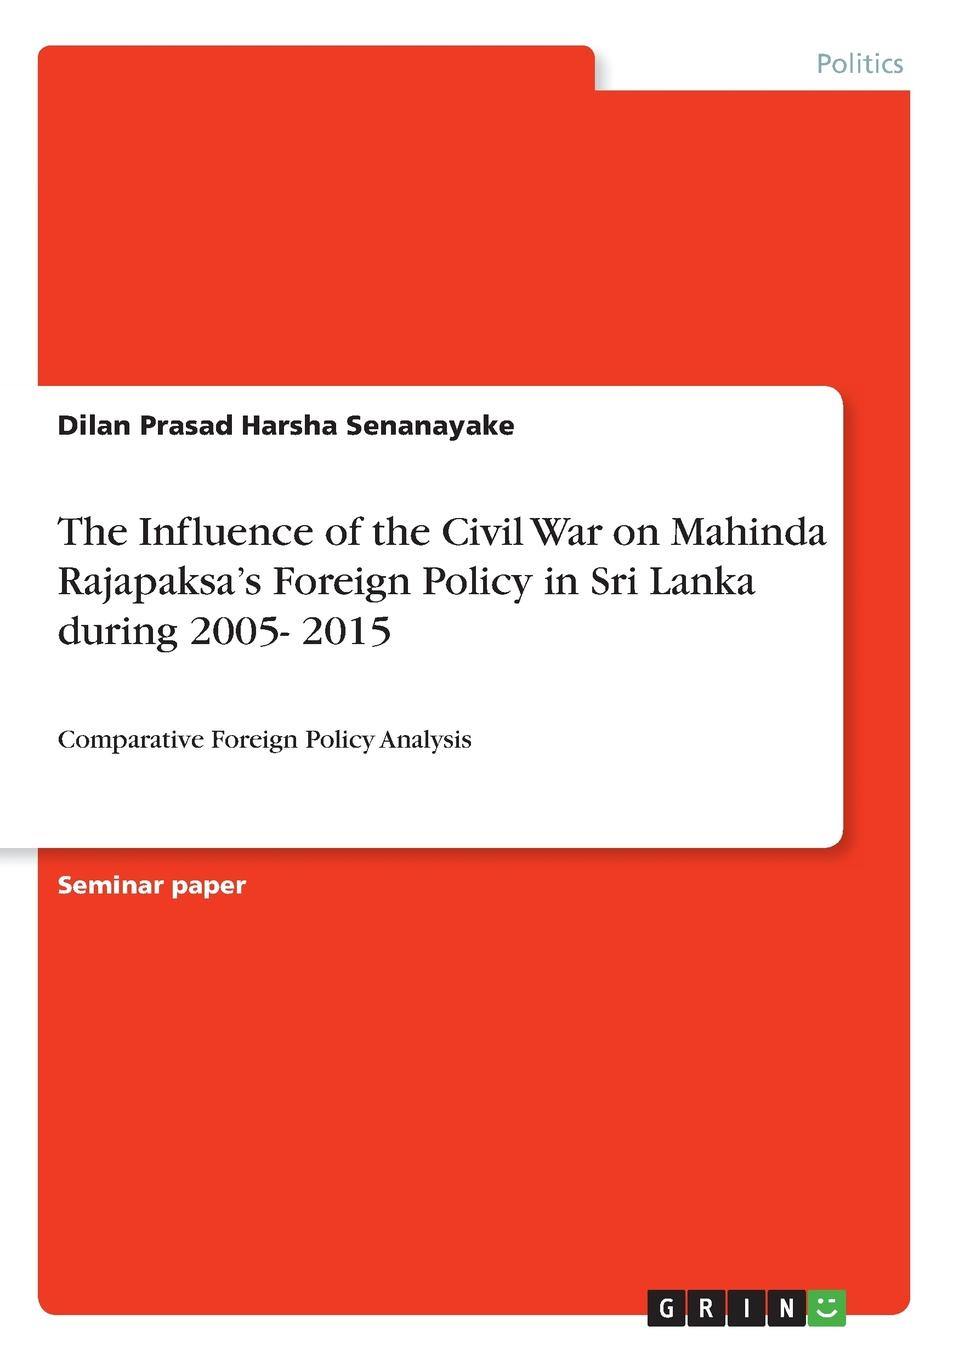 Dilan Prasad Harsha Senanayake The Influence of the Civil War on Mahinda Rajapaksa.s Foreign Policy in Sri Lanka during 2005- 2015 jeffrey lantis s us foreign policy in action an innovative teaching text